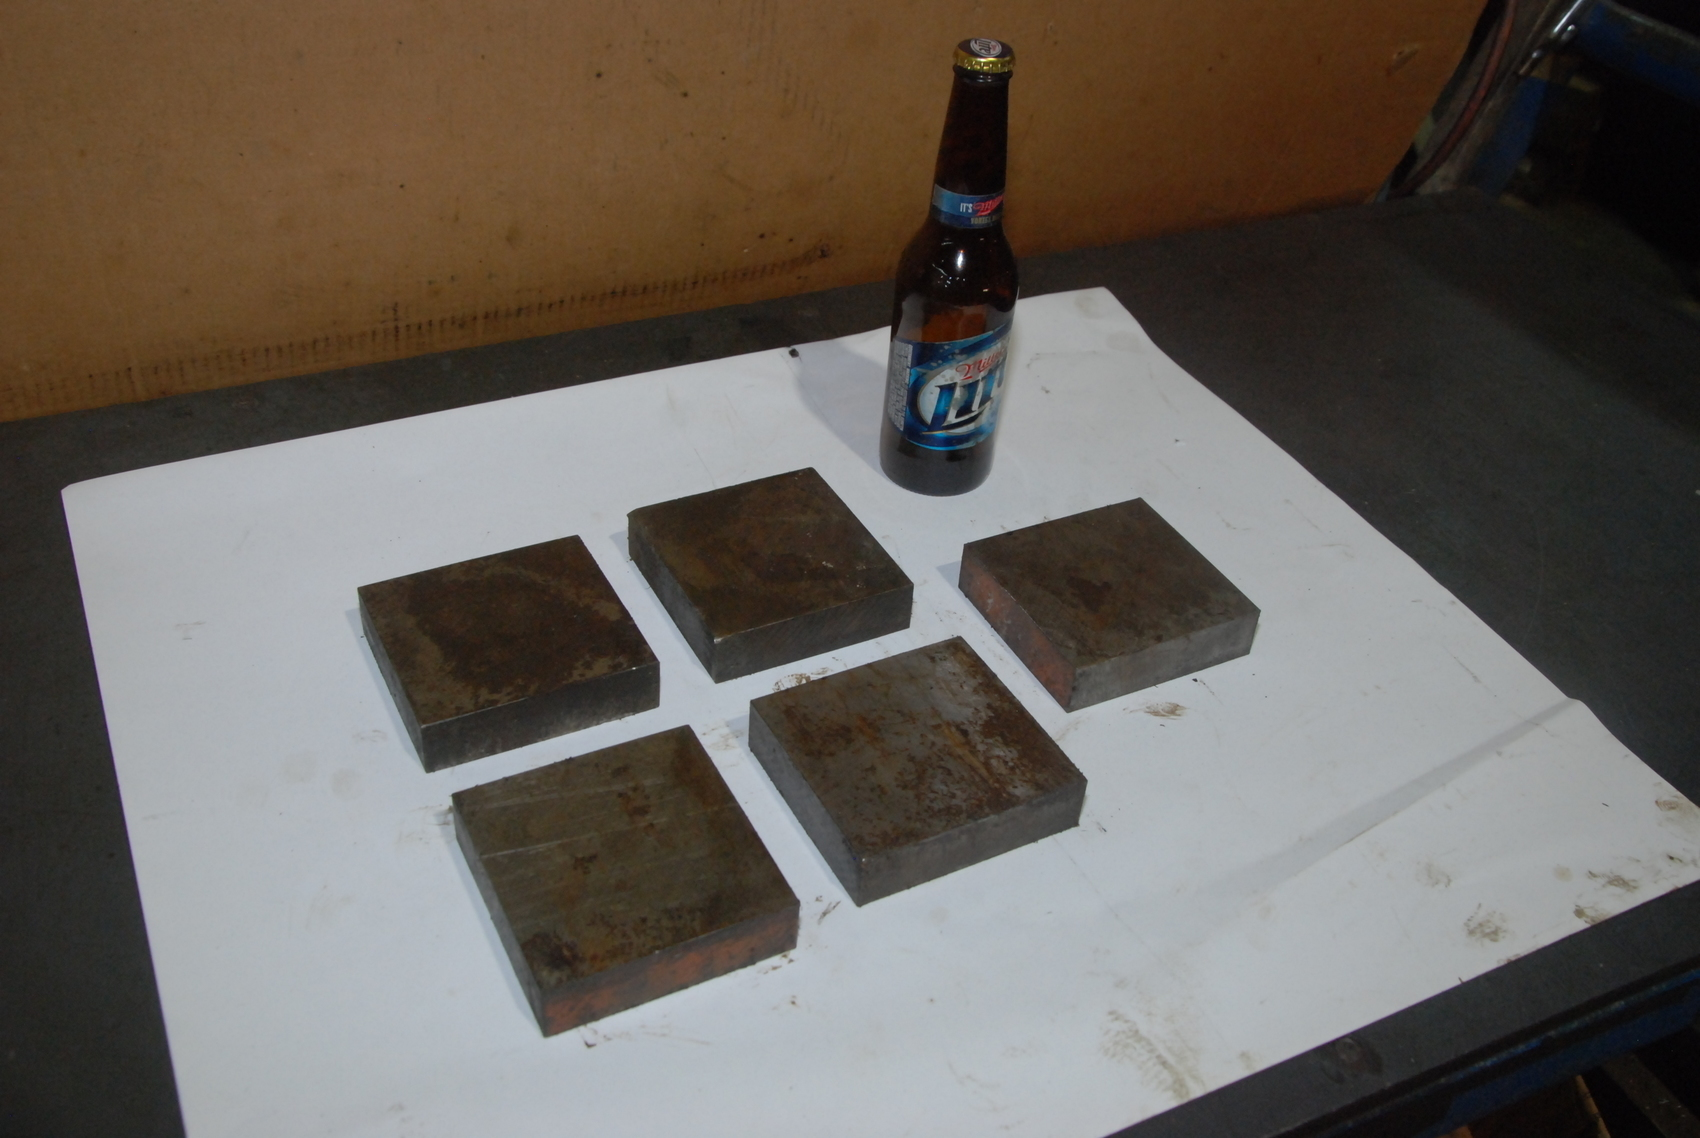 LOT OF 5 steel metal bars square 3.8 by 4 by 1 inch blacksmith anvil